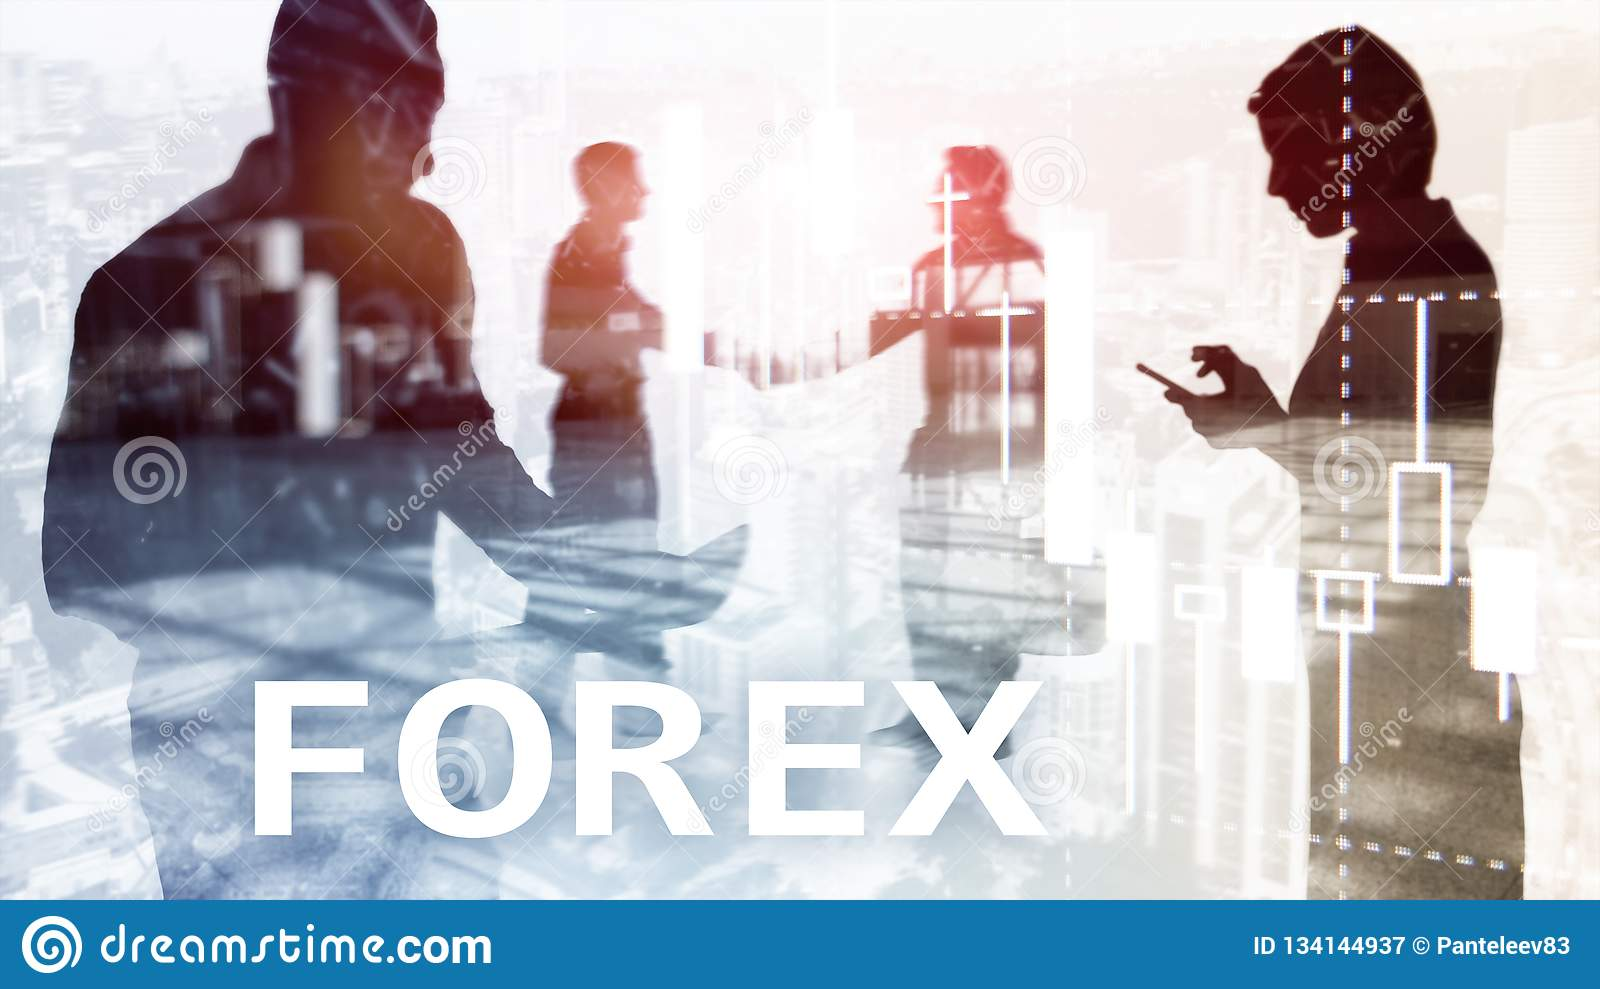 Forex trading, financial candle chart and graphs on blurred business center background. Man and woman, silhouettes.